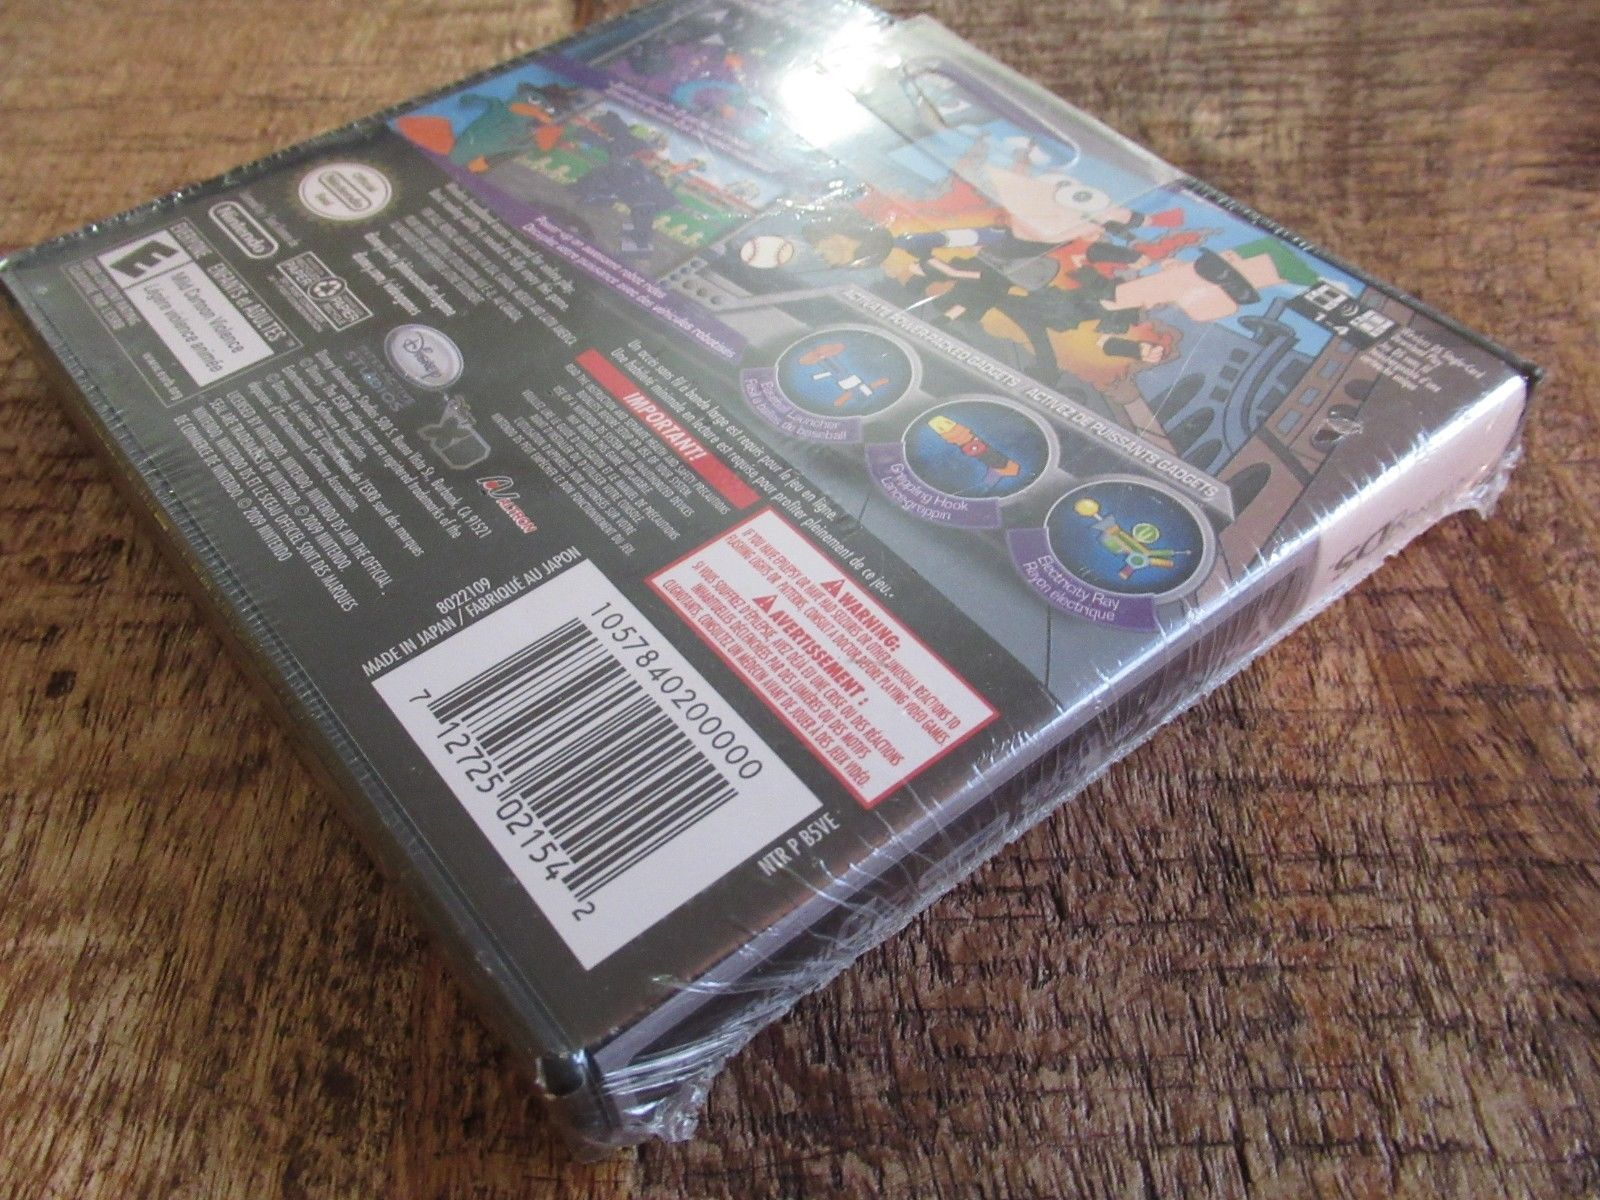 Phineas and Ferb: Across the 2nd Dimension (Nintendo DS, 2011) Sealed image 4